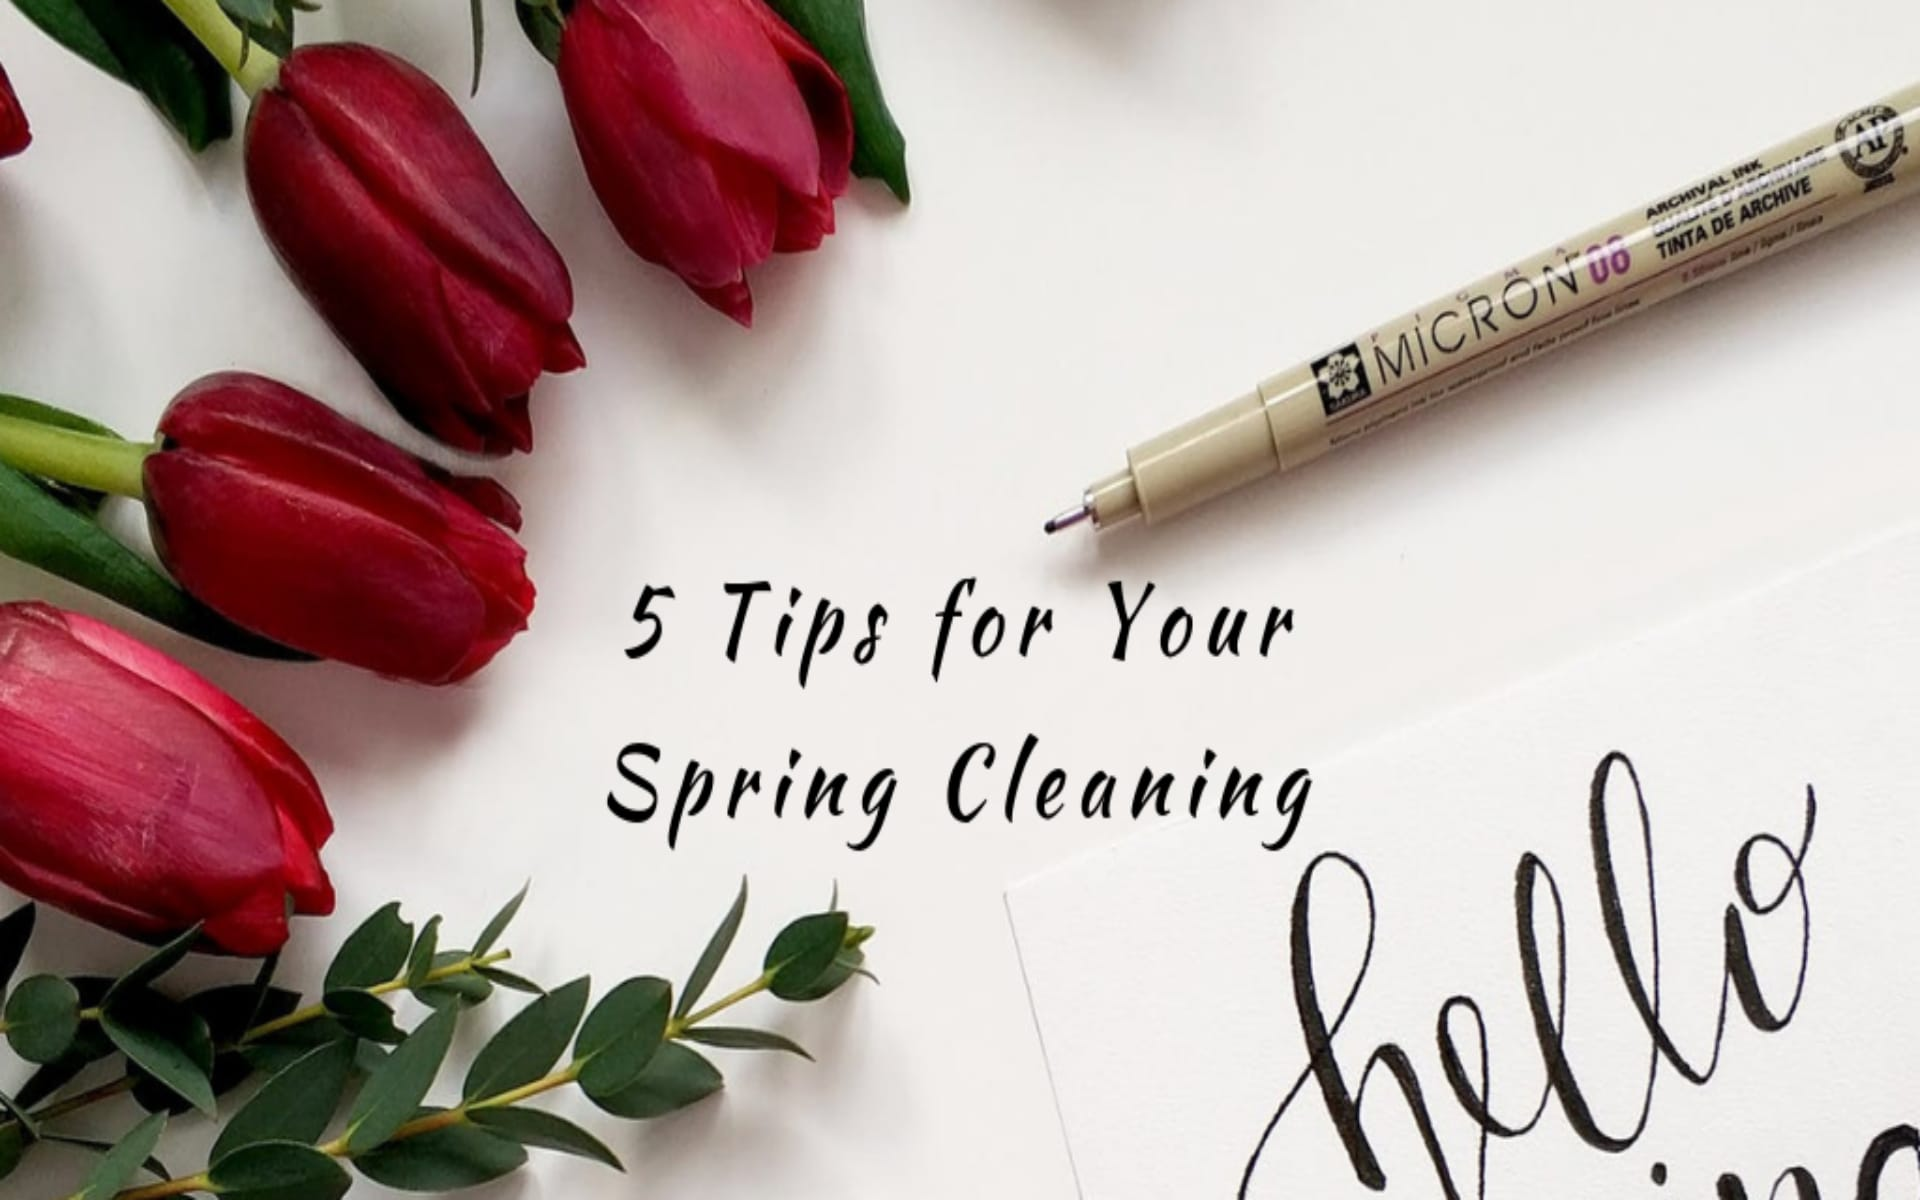 5 Tips for Your Spring Cleaning